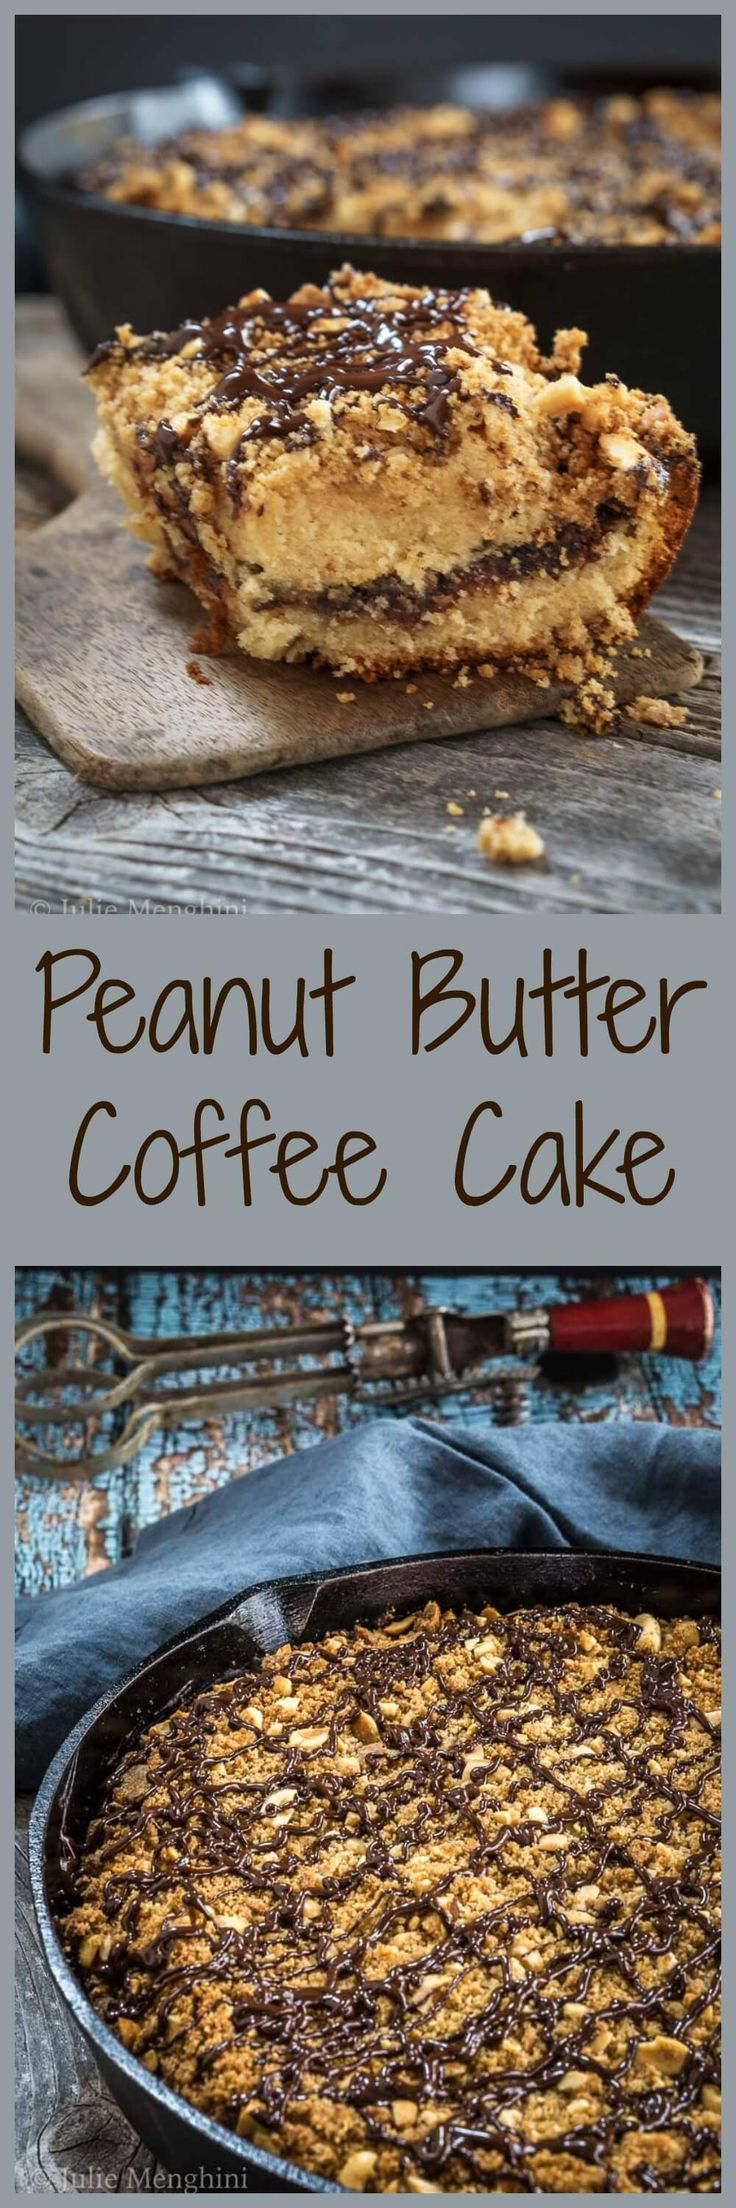 Peanut Butter Coffee Cake is a heavenly mixture of chocolate, peanut butter, and Nutella all under a coating of streusel topping. Nothing is missing from this delicious dessert. | HostessAtHeart.com via @HostessAtHeart